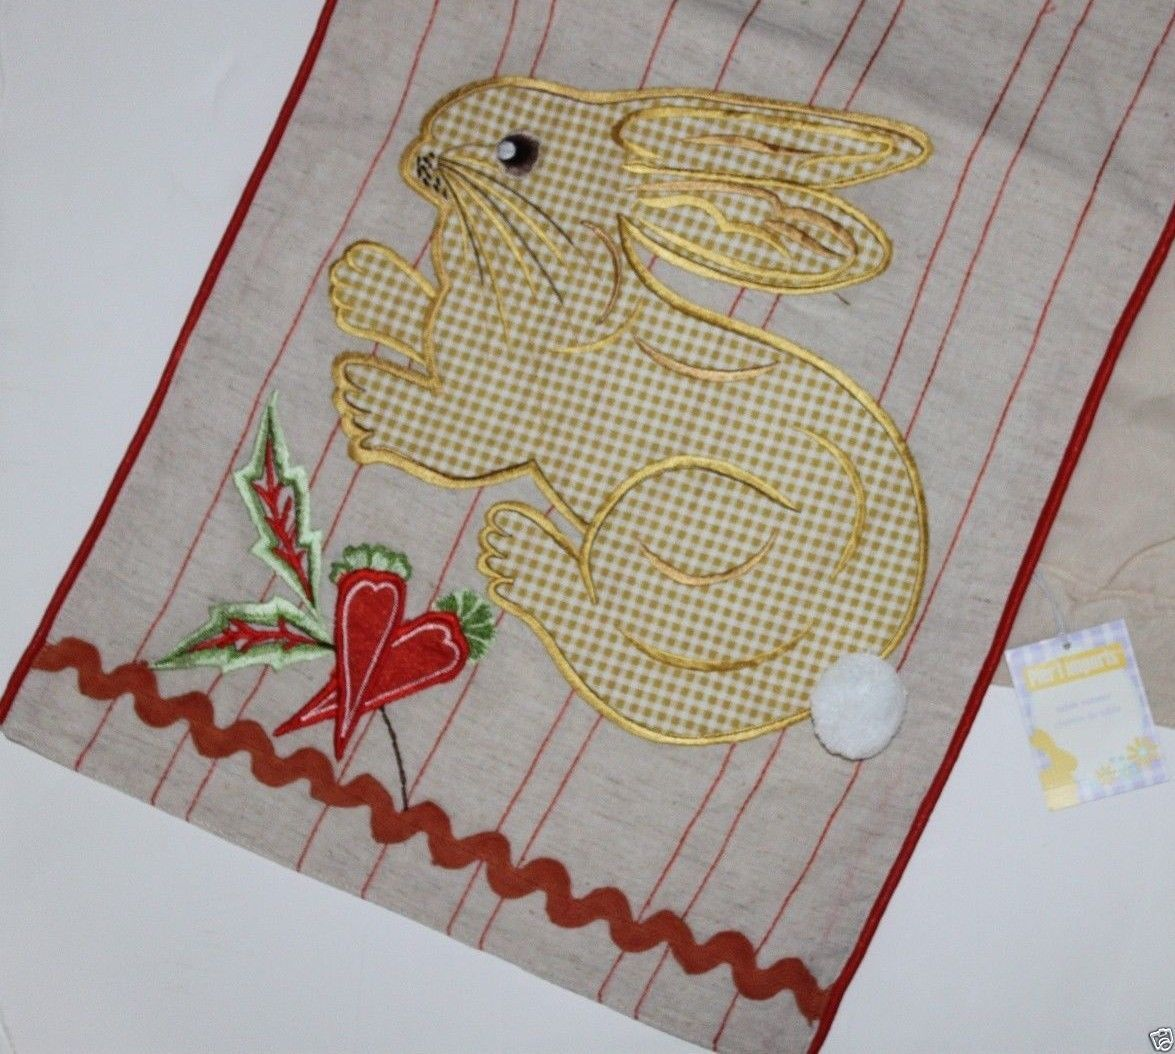 Primary image for Pier 1 Imports NWT Mixed Materials Easter Bunny Table Runner 13 x 72